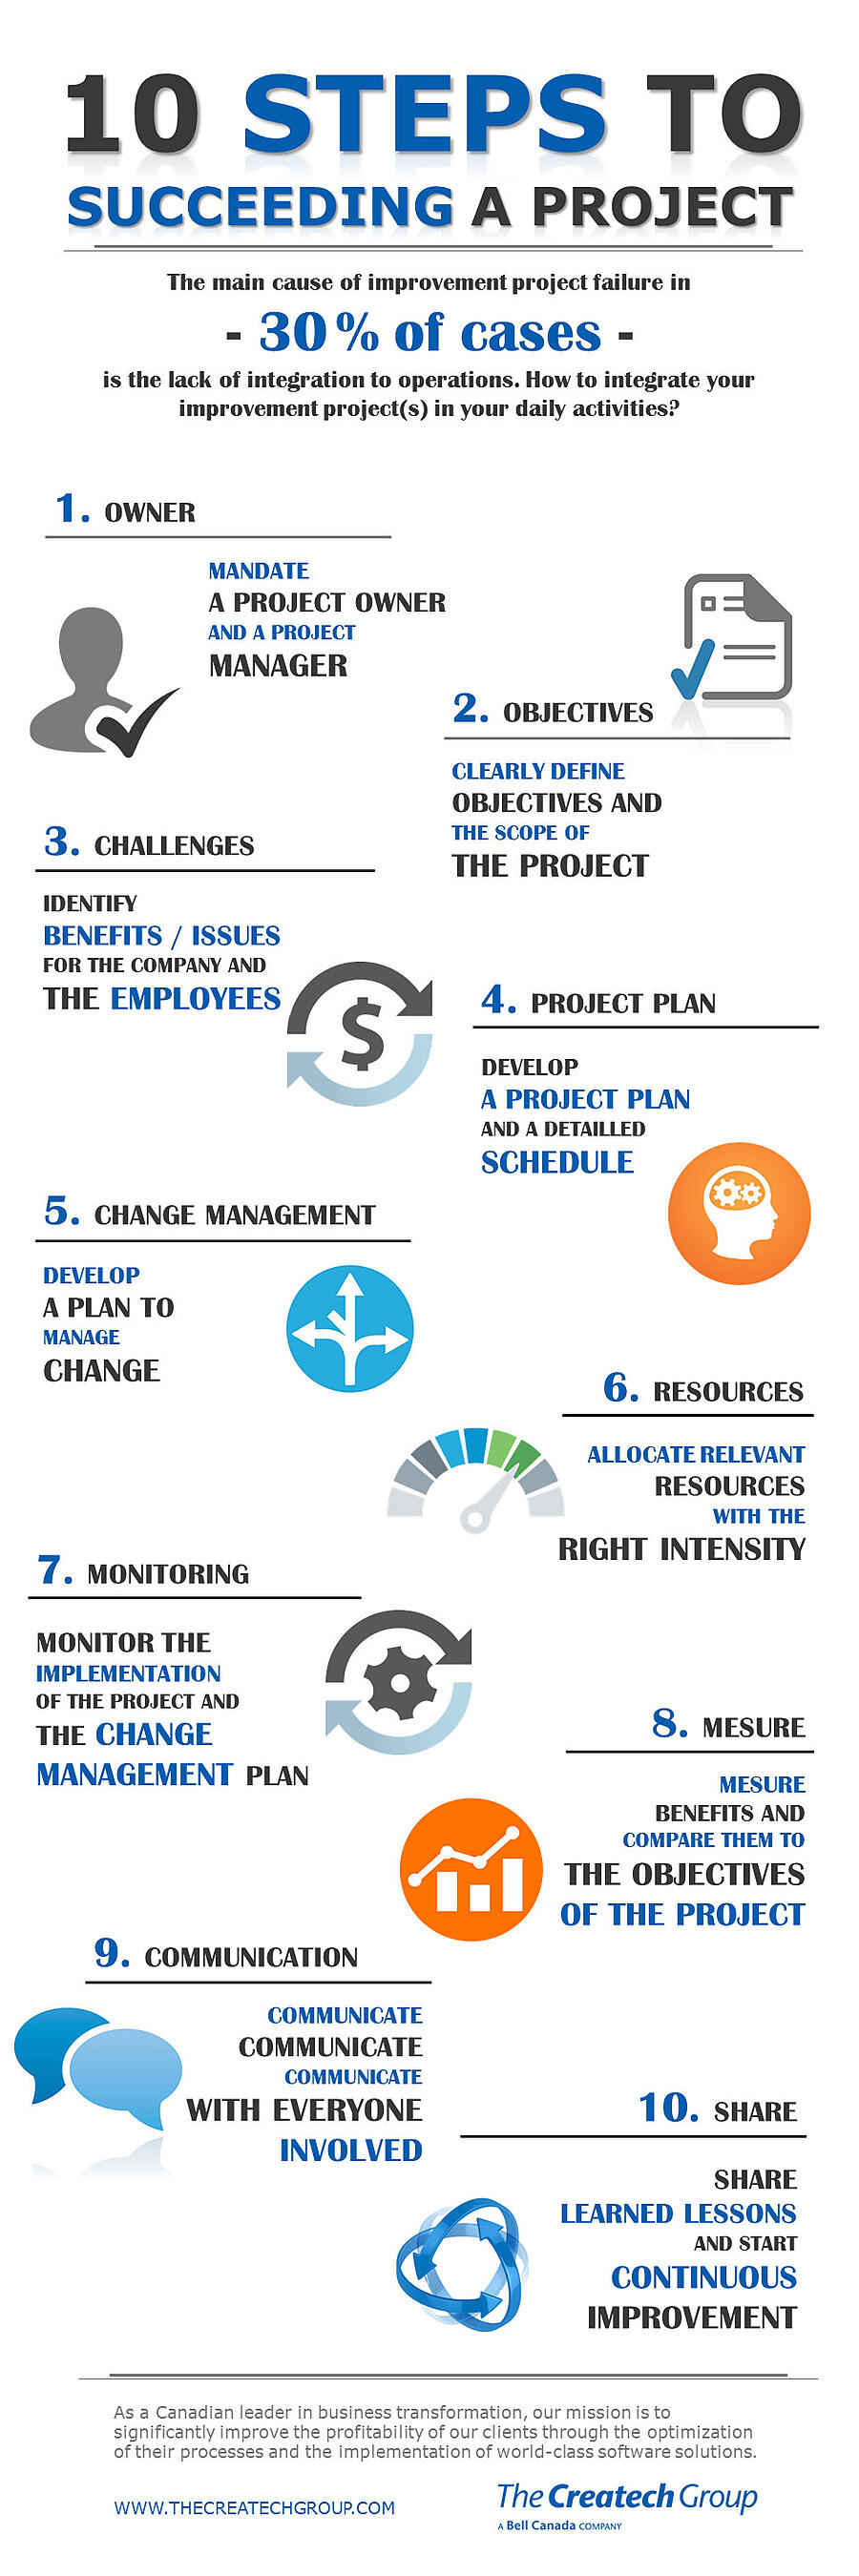 The_Createch_Group_10_steps_to_succeeding_a_project